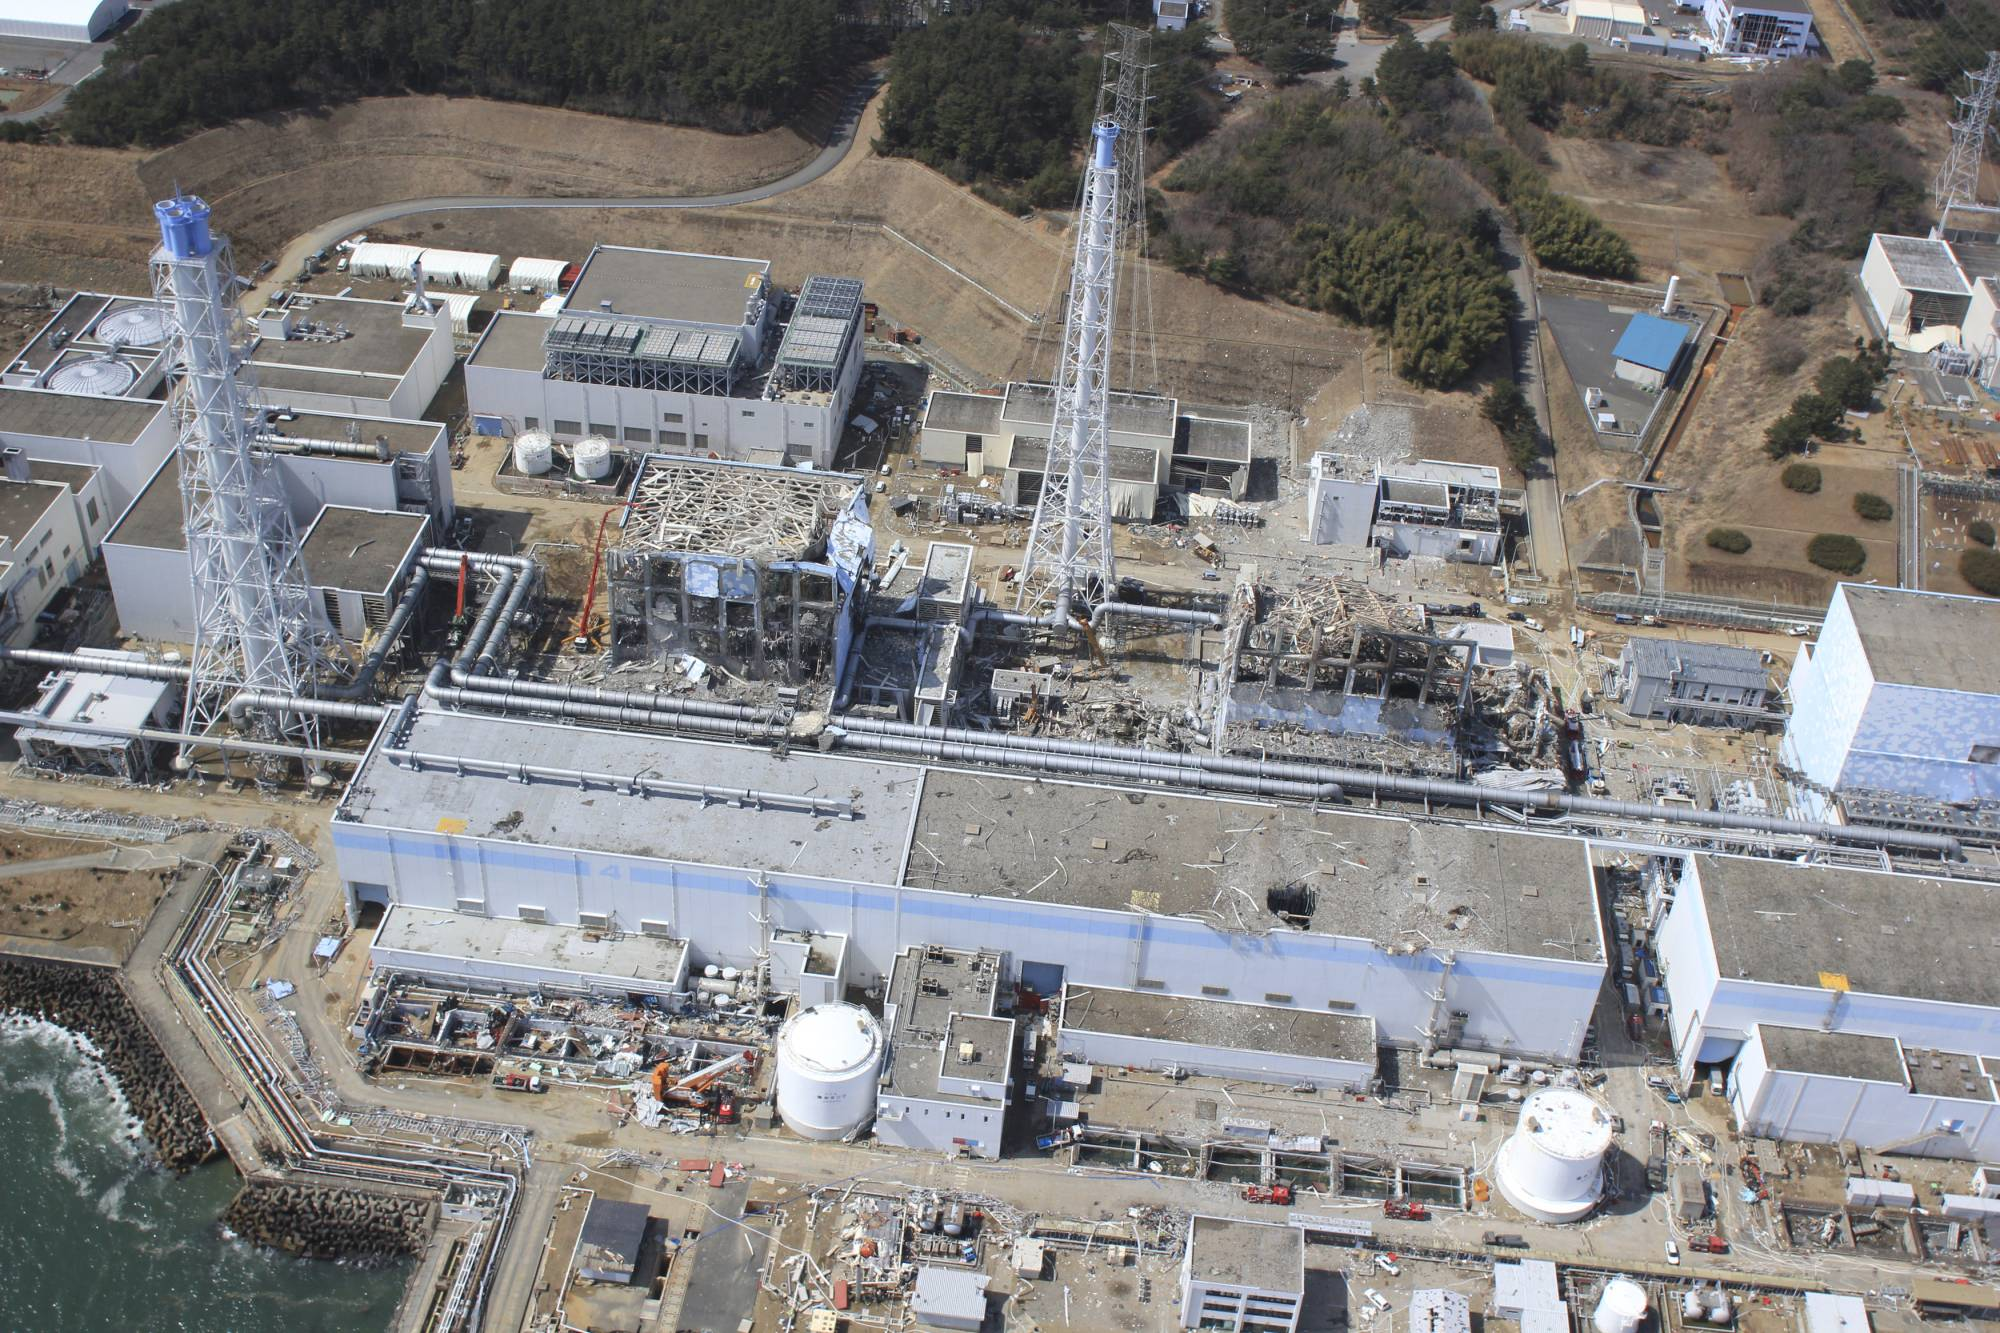 The Fukushima nuclear disaster of March 2011 has been the subject of reviews and reports, 10 years since the plant experienced meltdowns following the Great East Japan Earthquake and tsunami. | AIR PHOTO SERVICE / VIA REUTERS